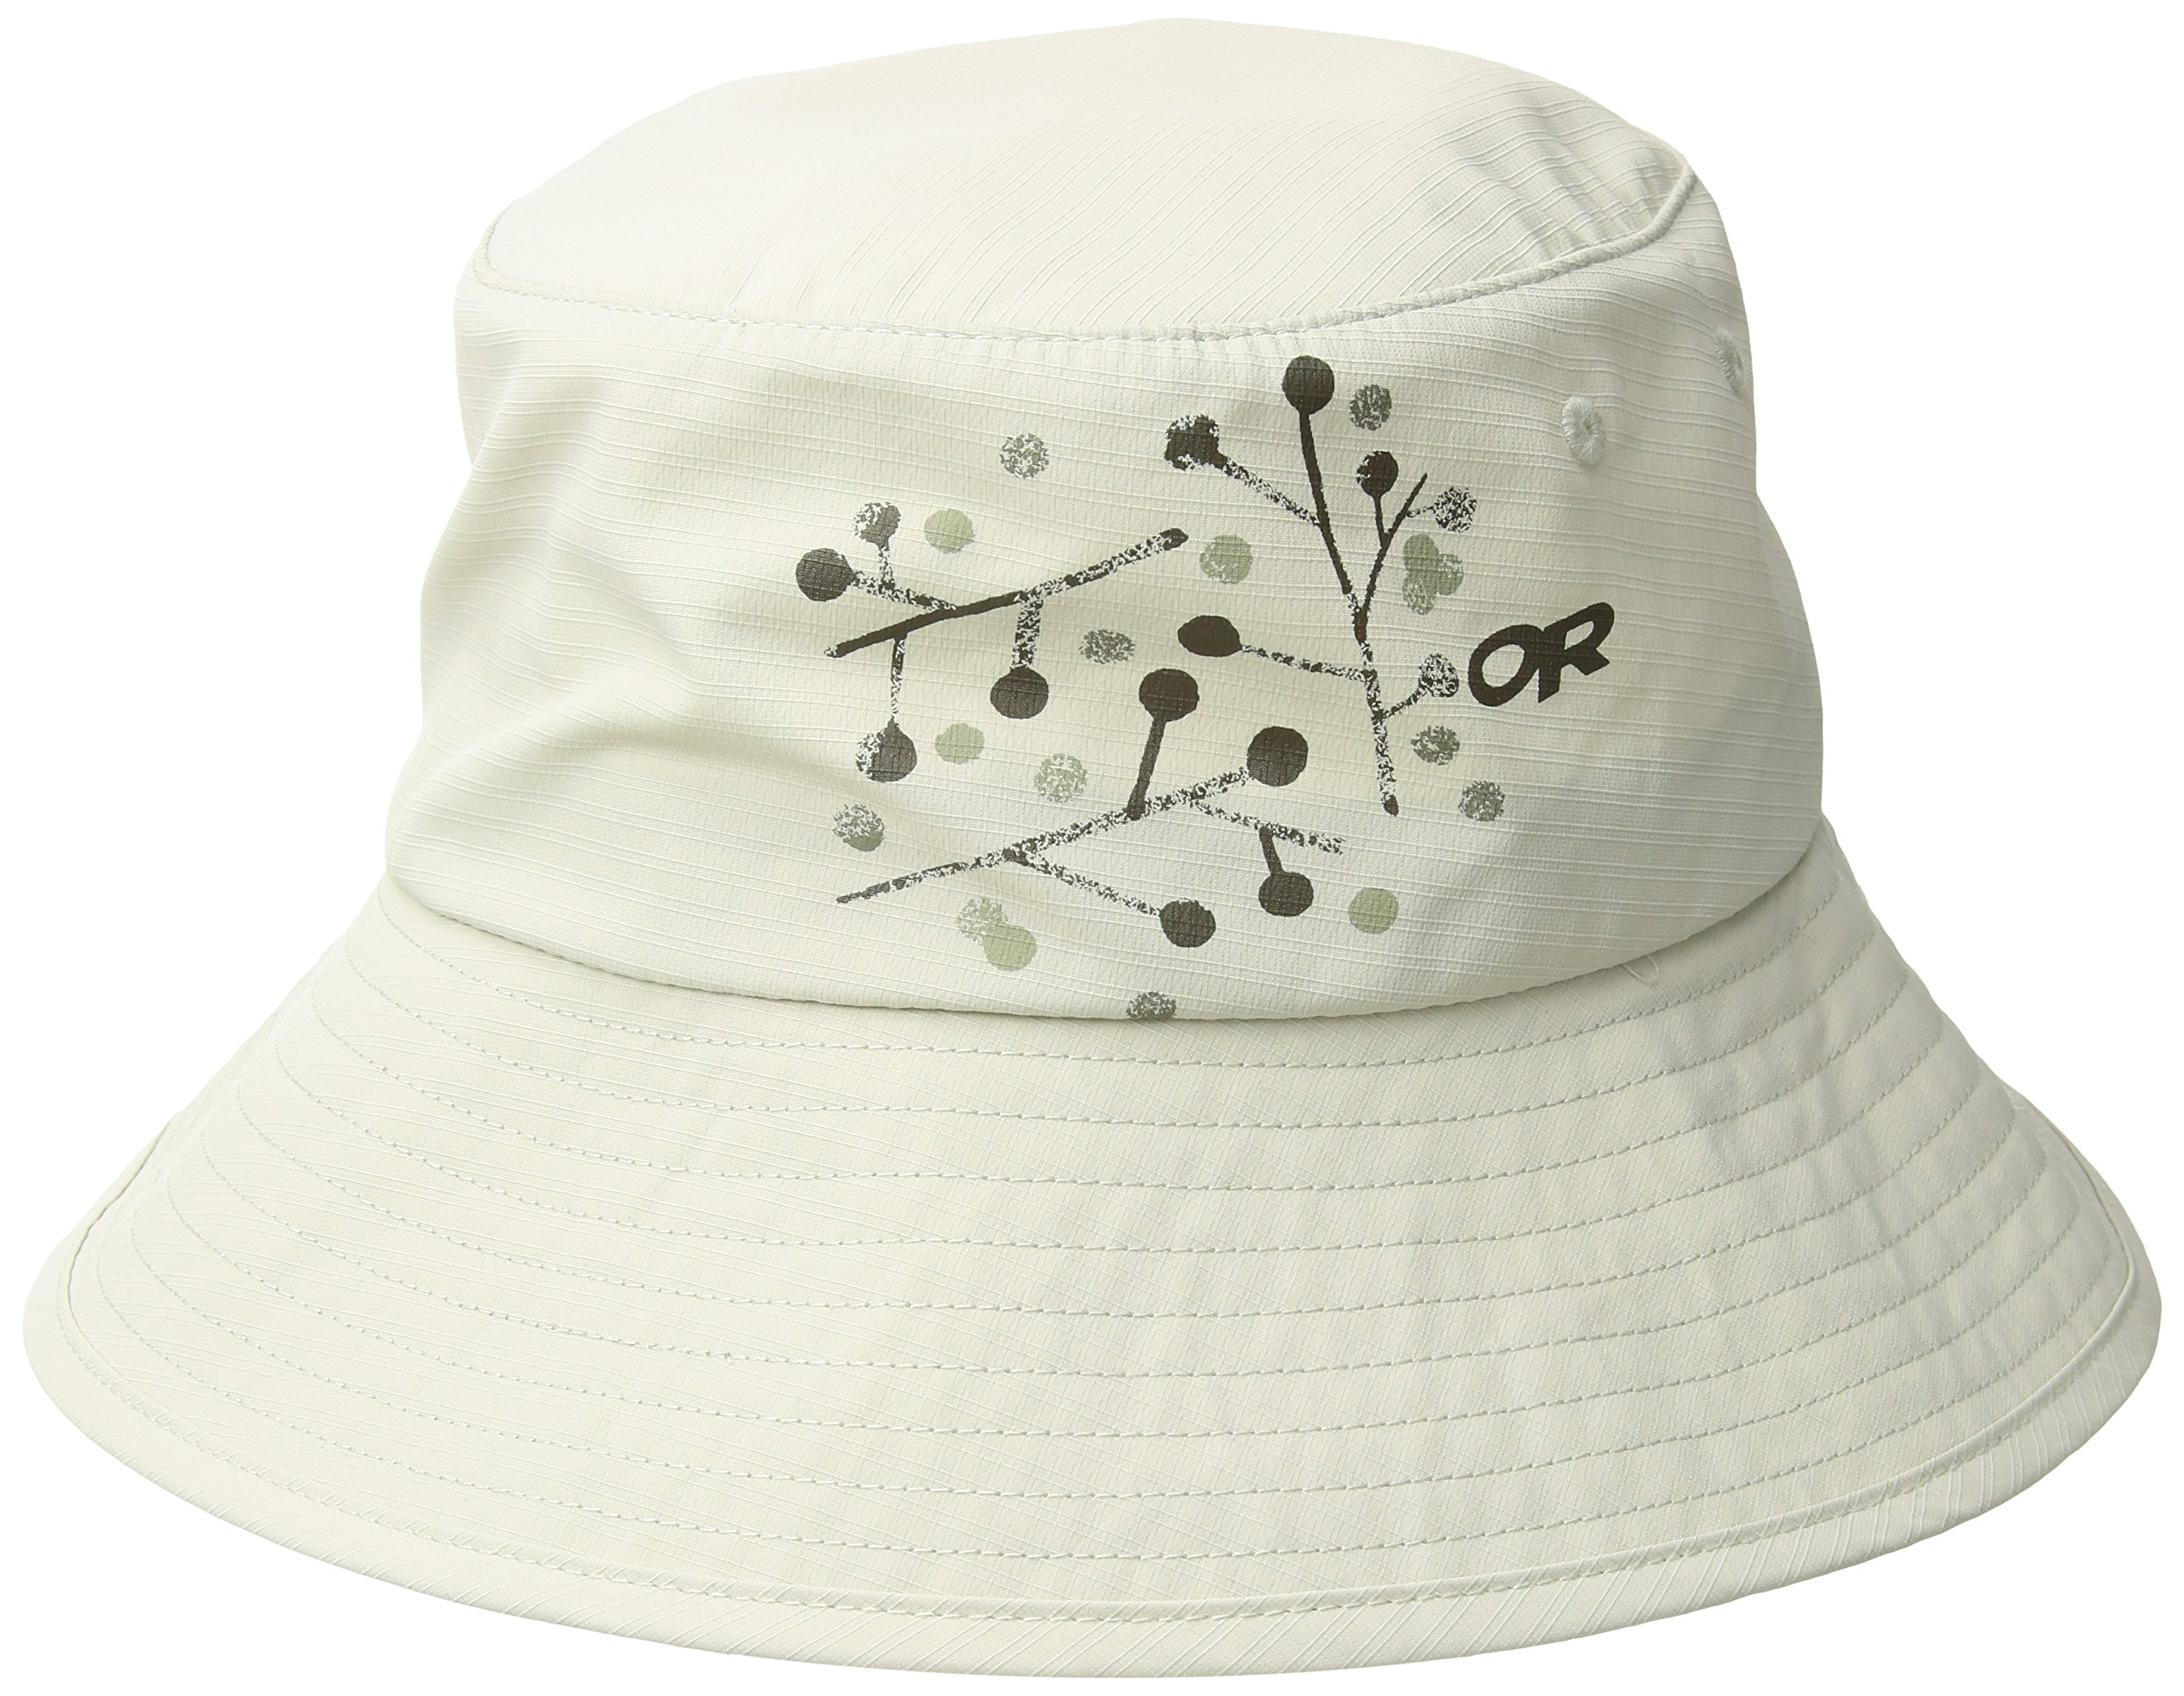 Outdoor Research Women's Solaris Sun Bucket Hat, Sand, Small by Outdoor Research